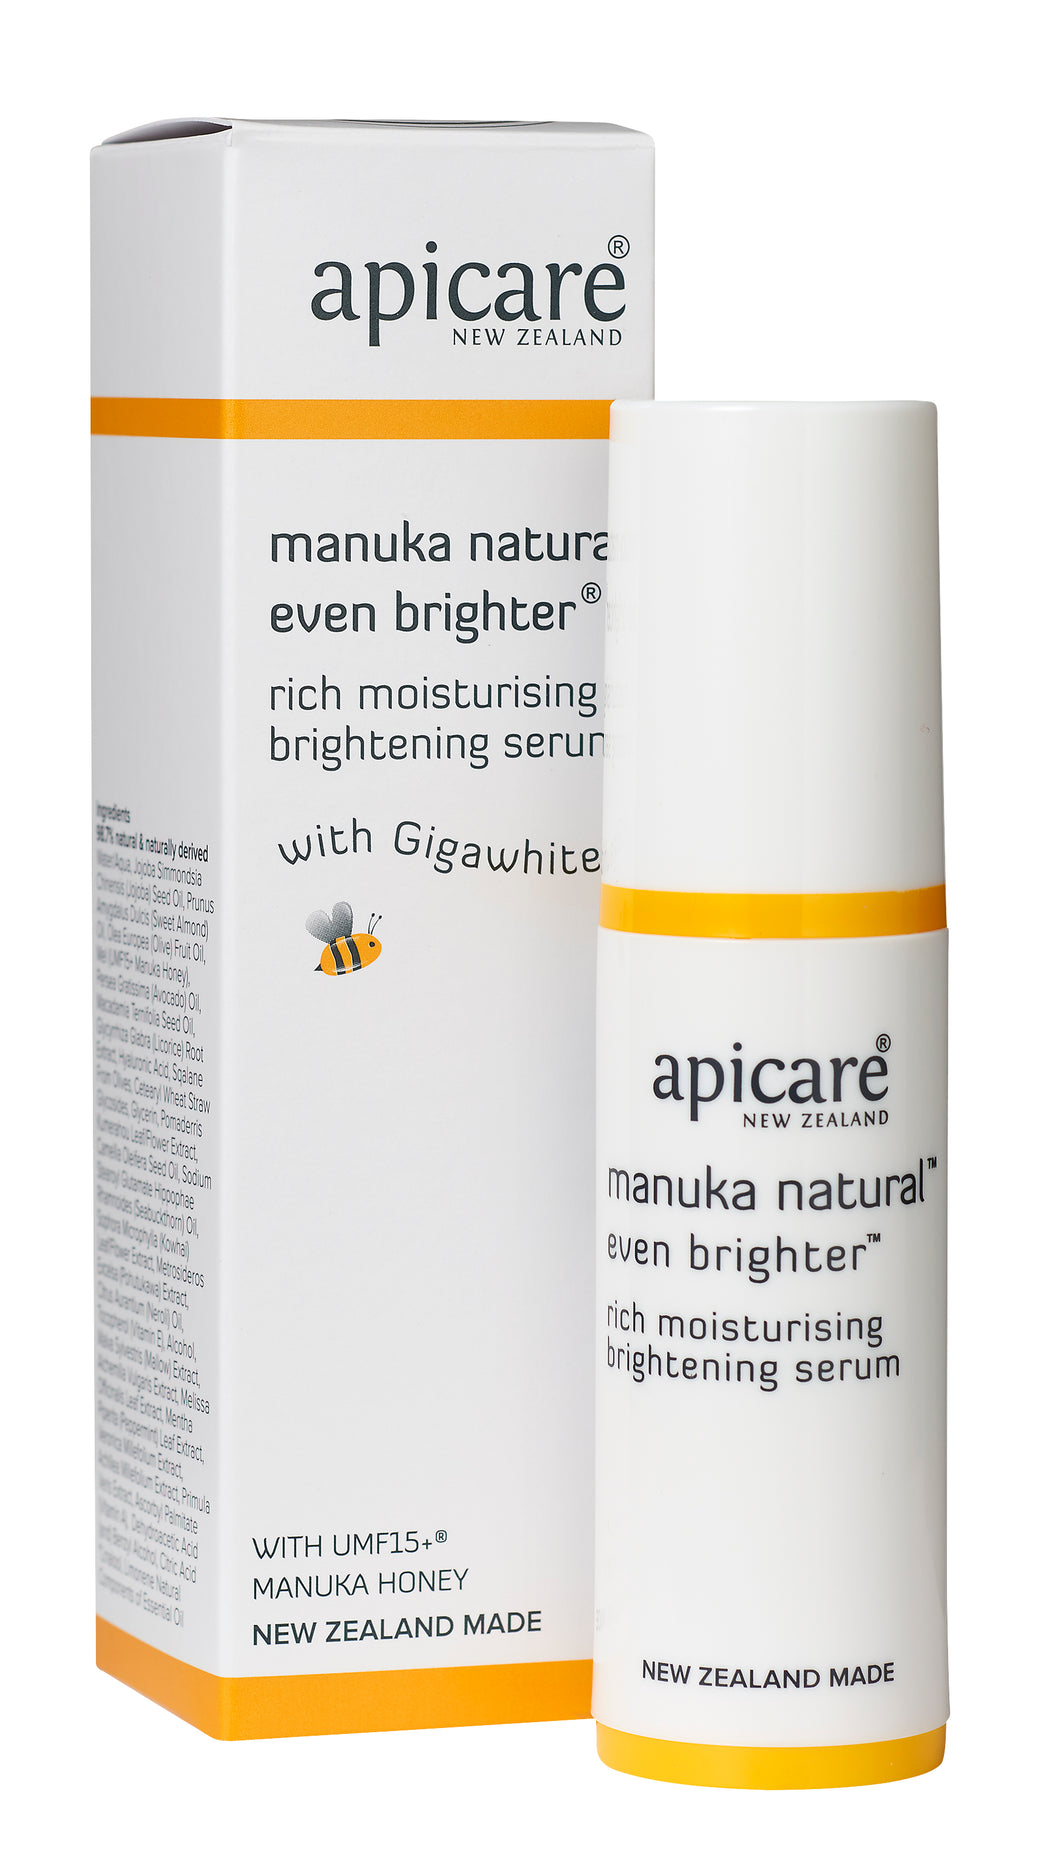 Apicare even brighter brightening serum